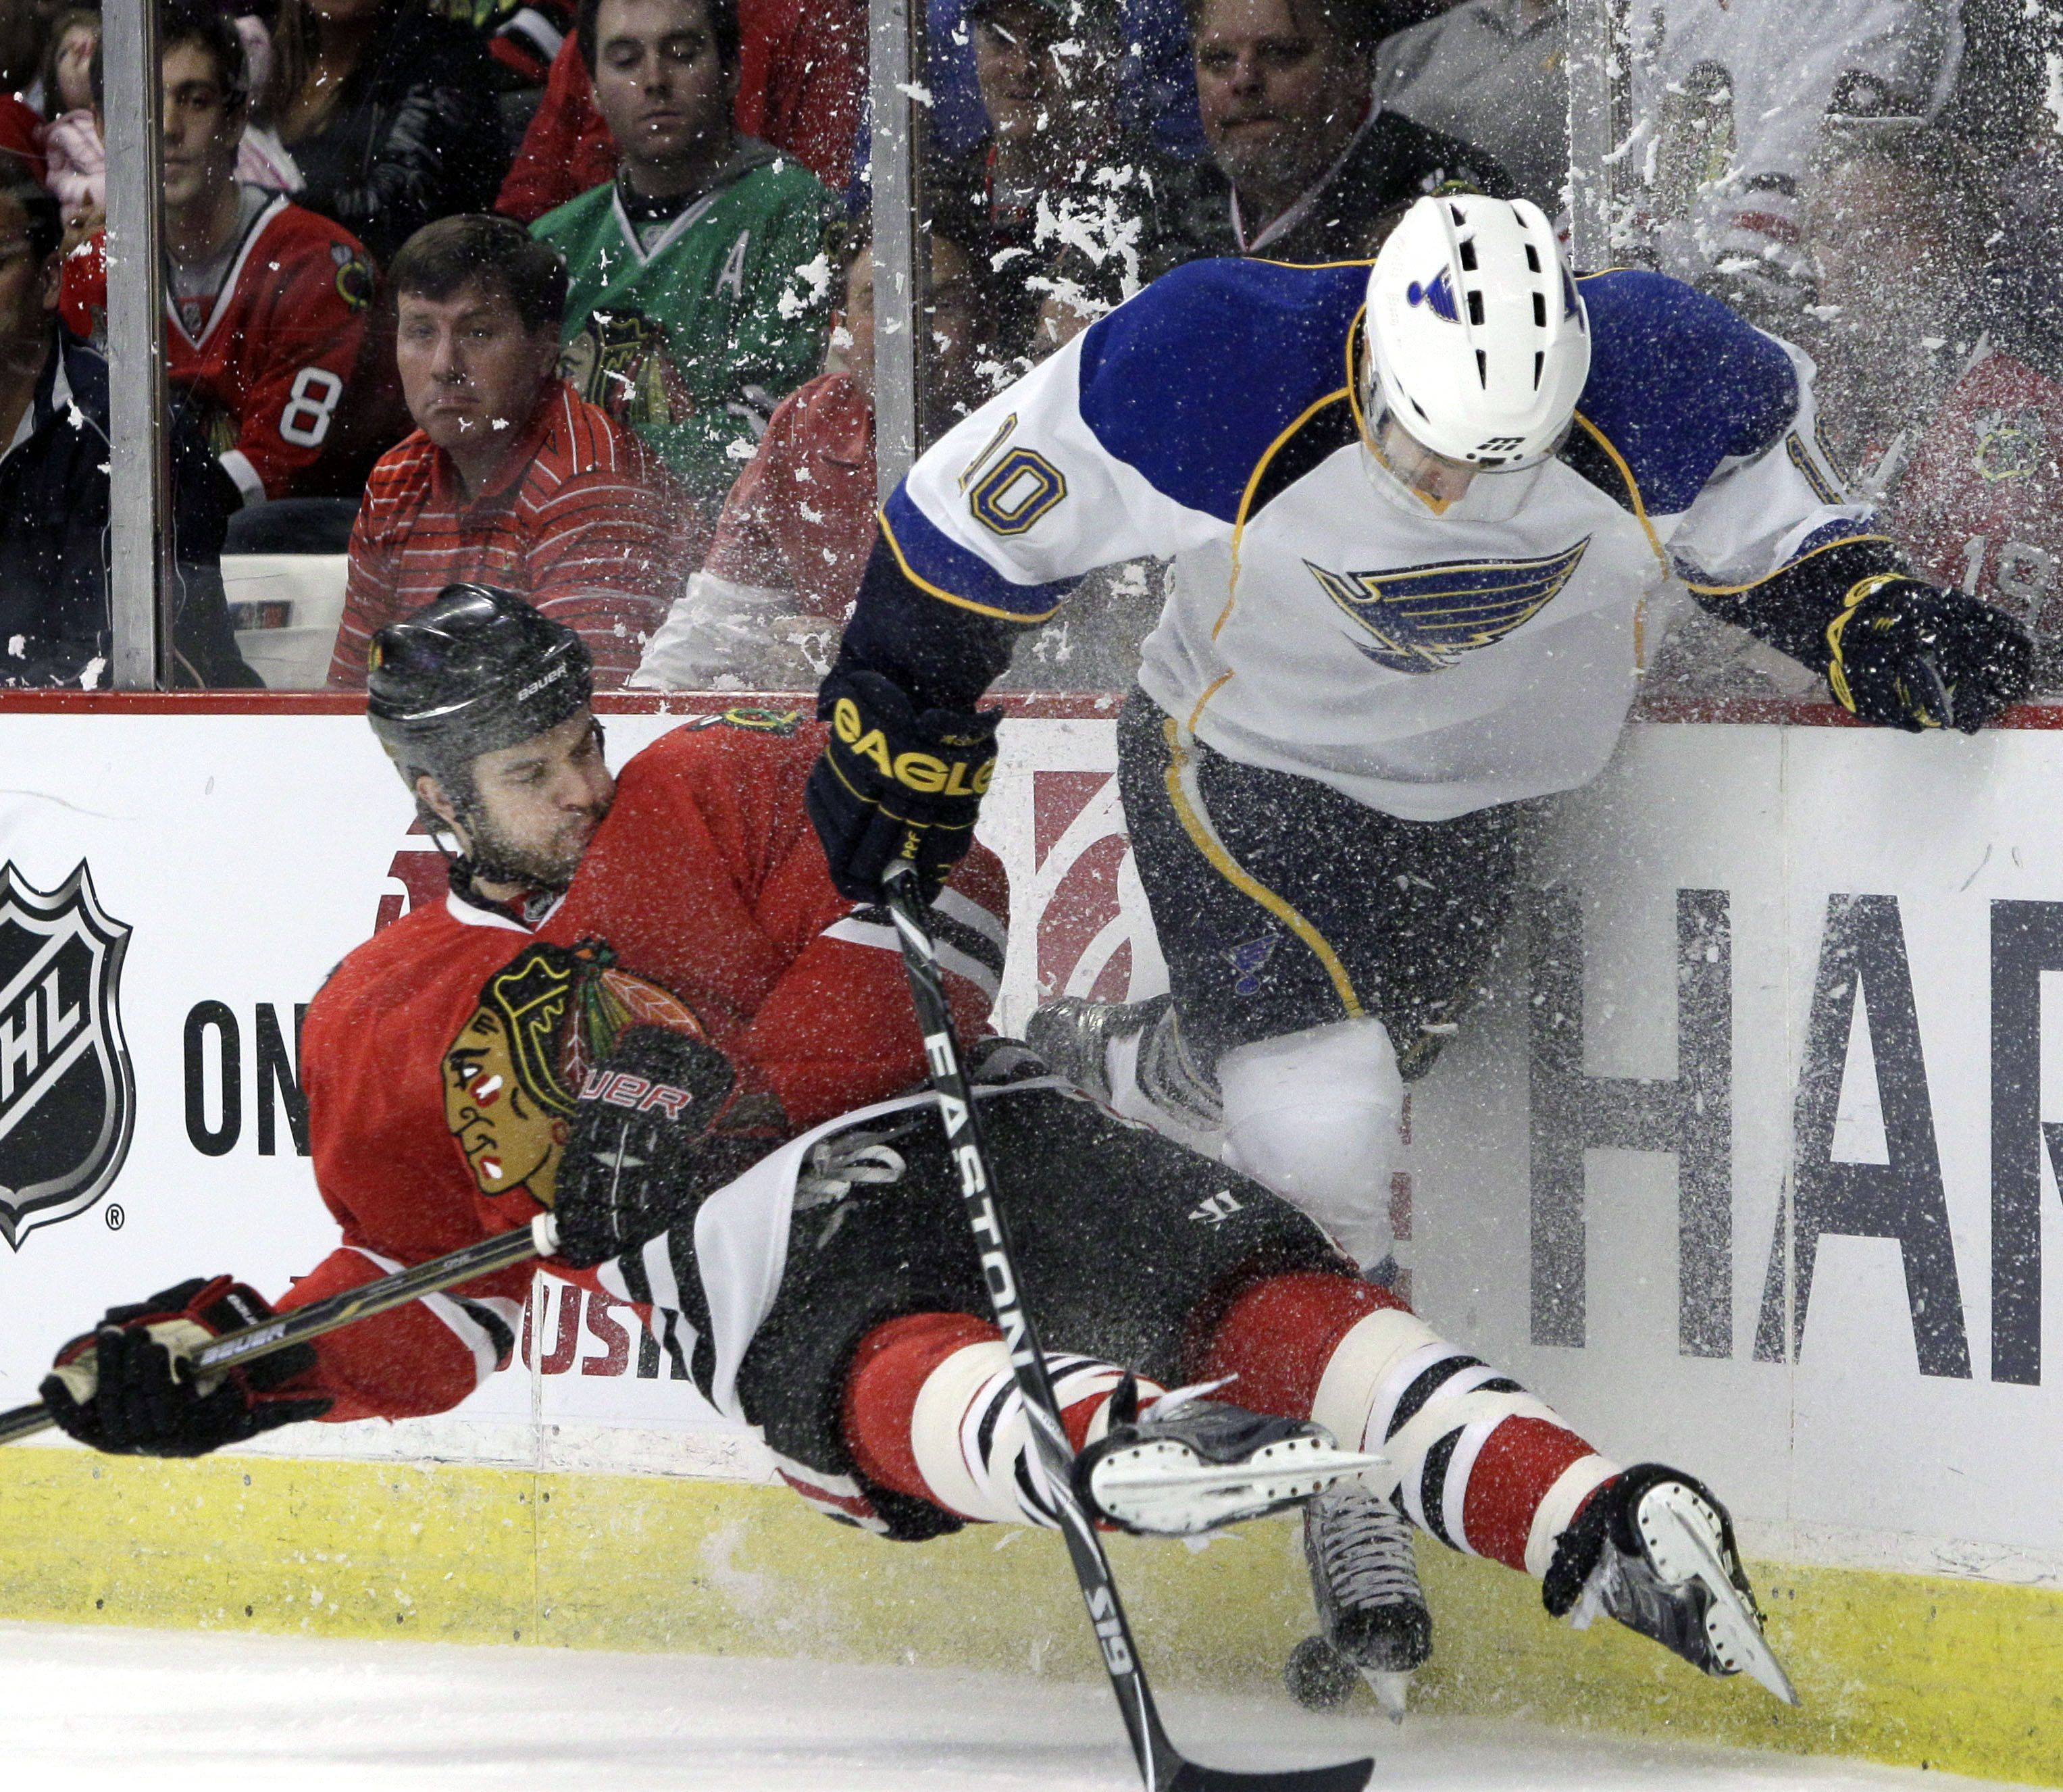 St. Louis Blues' Andy McDonald, right, battles Chicago Blackhawks' Brent Seabrook for the puck during the first period of an NHL hockey game in Chicago, Wednesday, April 6, 2011.